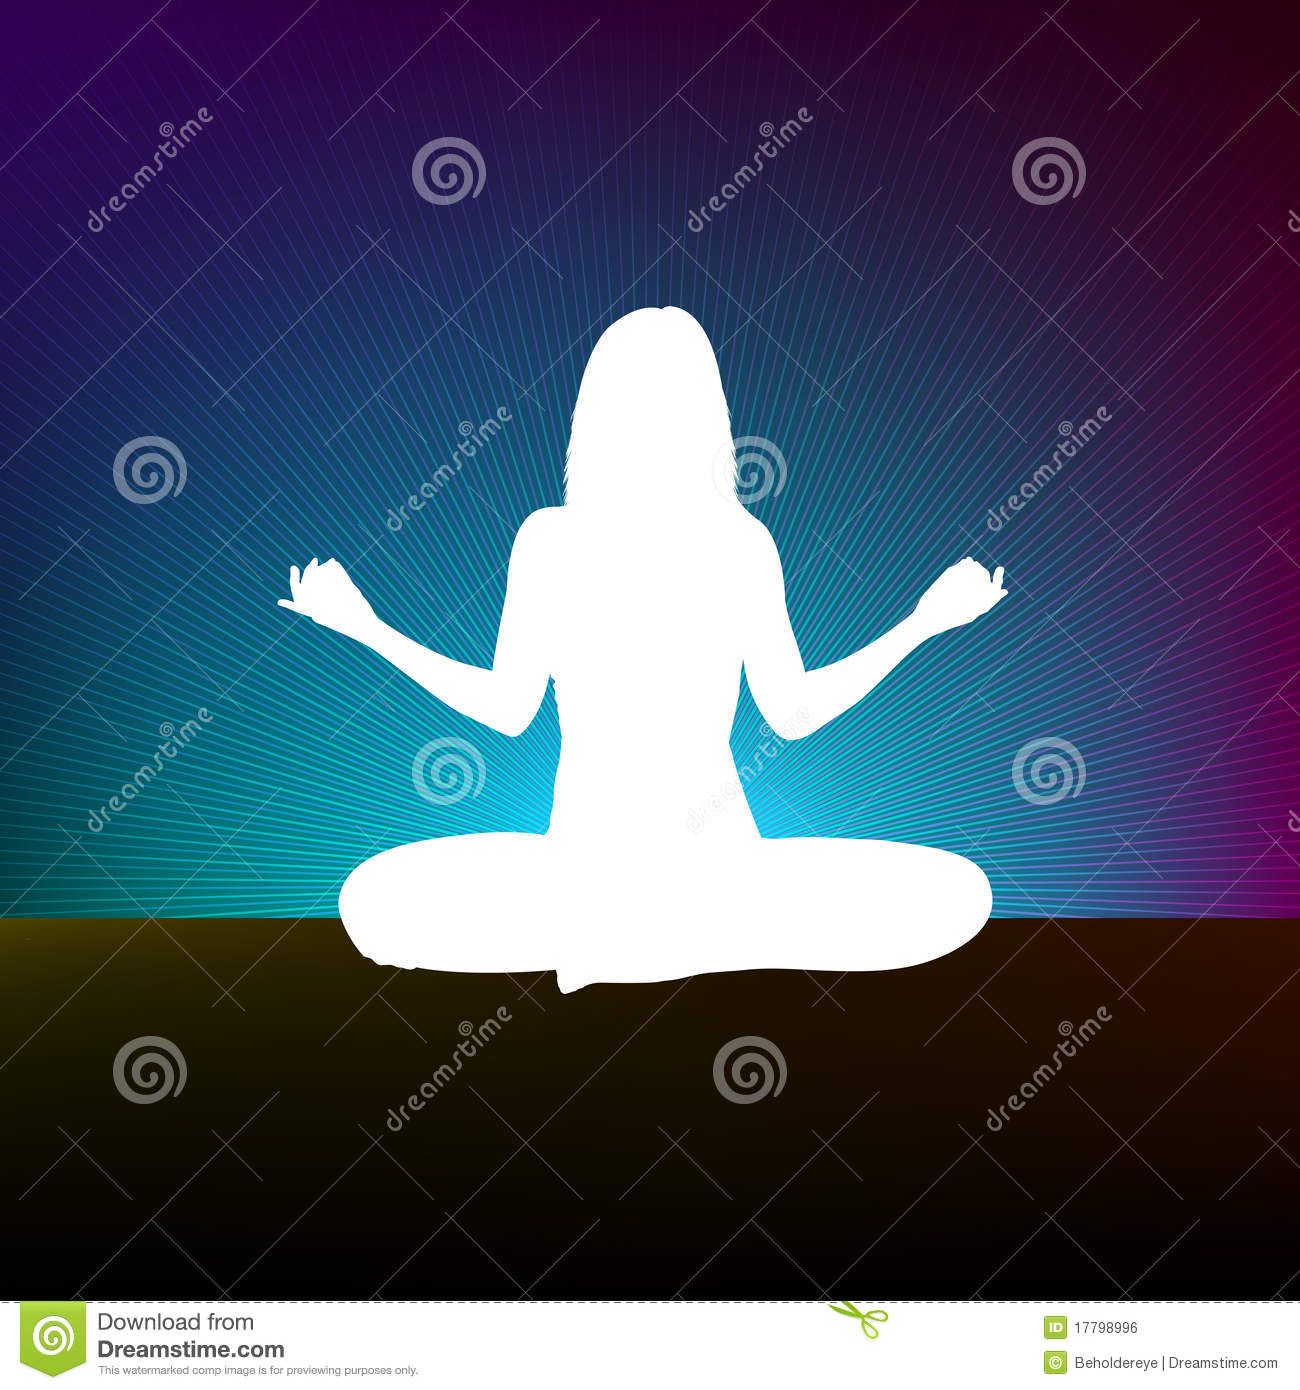 Yoga style template design. EPS 8 file included.